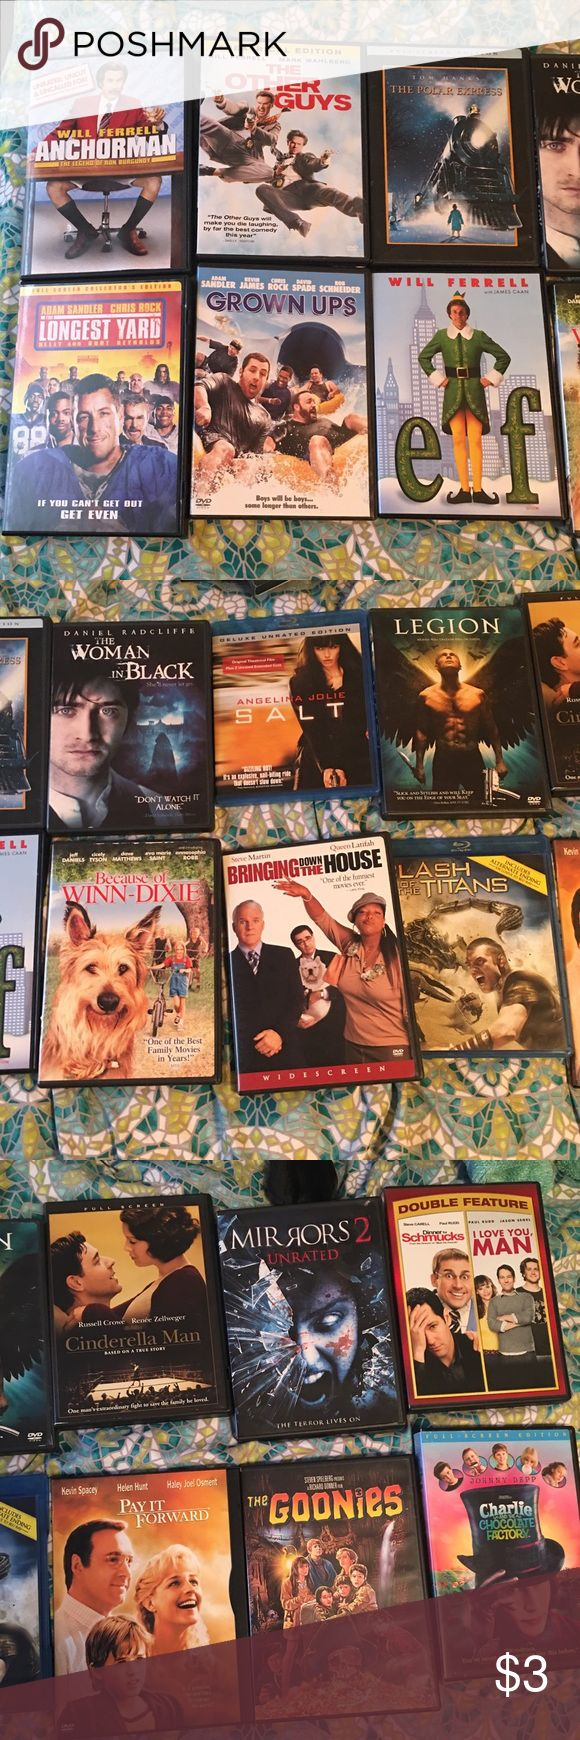 Movies! Read Description for Pricing $3 each or 4 for $10. Will sell ALL together for $35. Movies available; Anchorman, Longest Yard, The Other Guys, Grown Ups, Polar Express, Elf, Woman in Black, Because of Winn Dixie, Salt (Blue ray), Bringing Down the House, Legion, Clash of the Titans (Blue ray), Cinderella Man, Pay it Forward, Mirrors 2, The Goonies, Dinner for Schmucks/I Love You Man, Charlie and the Chocolate Factory Other